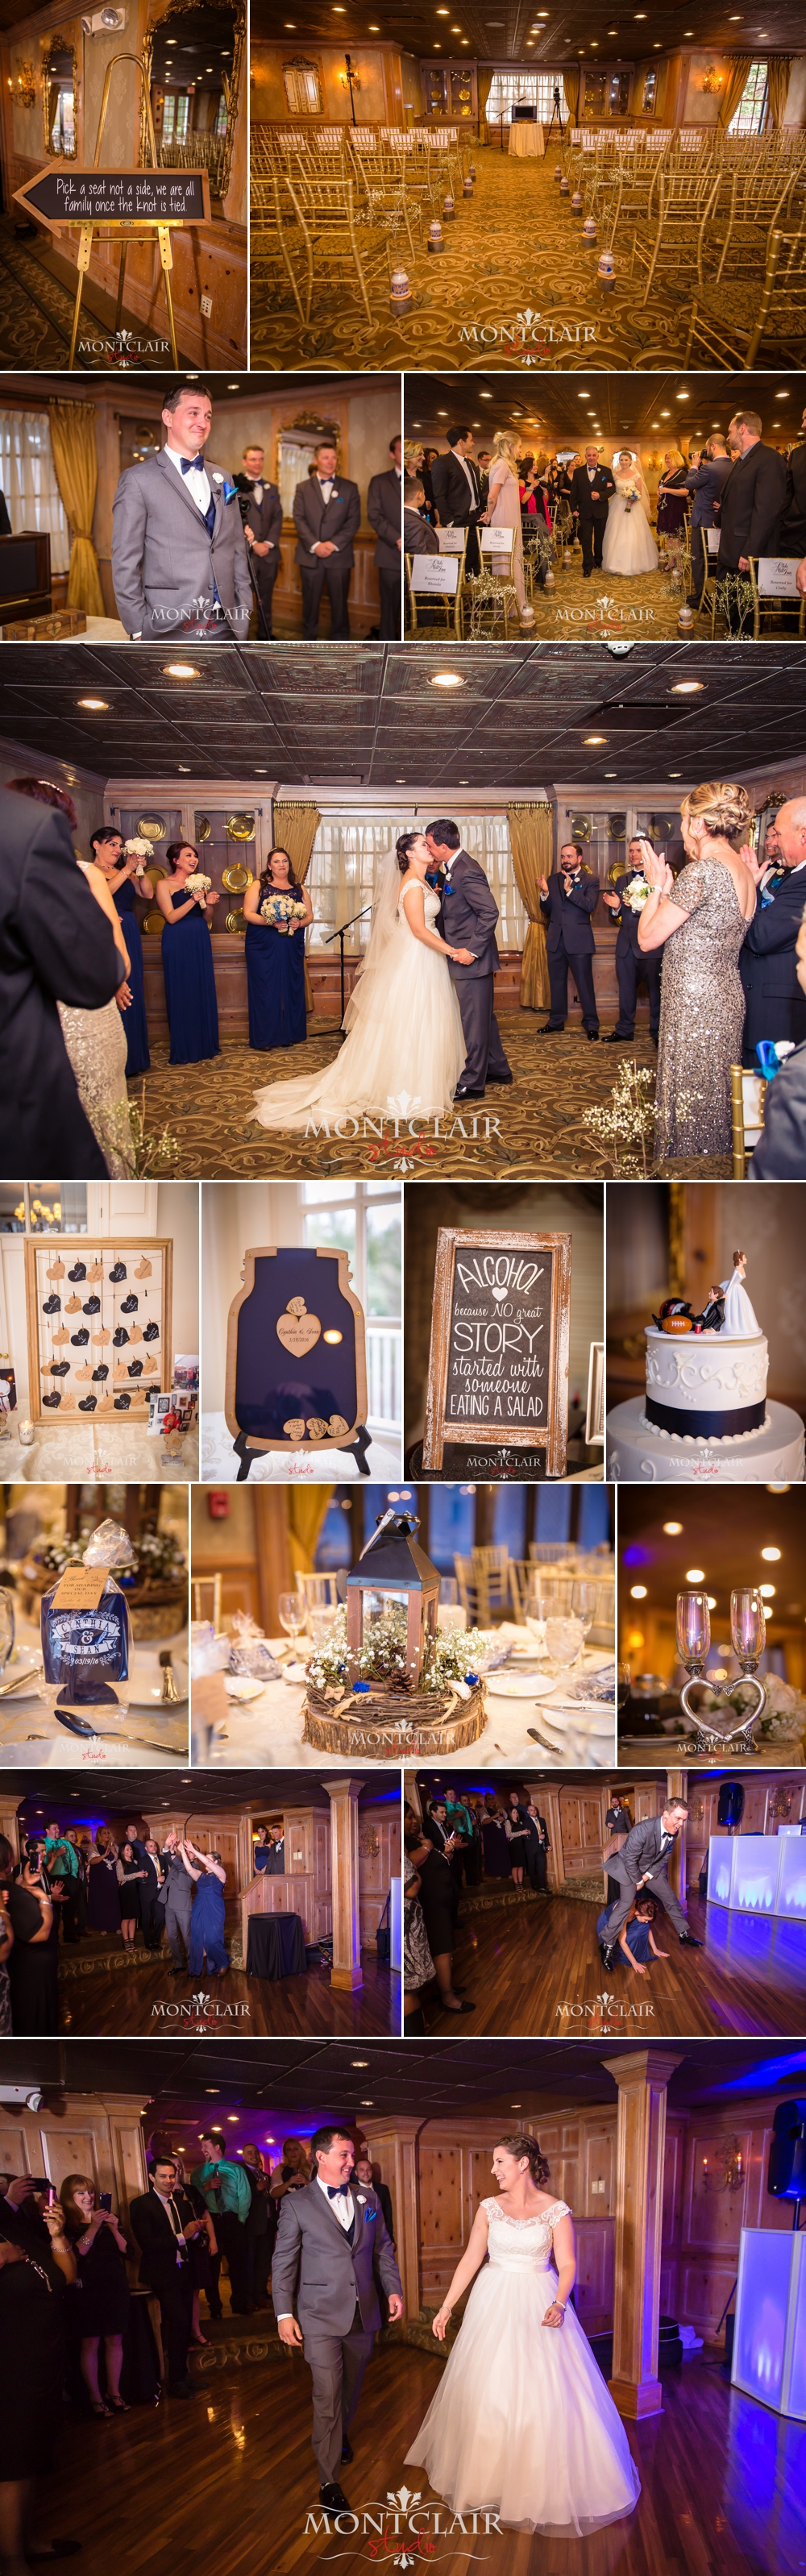 Cynthia and Sean - The Olde Mill Inn 7.jpg